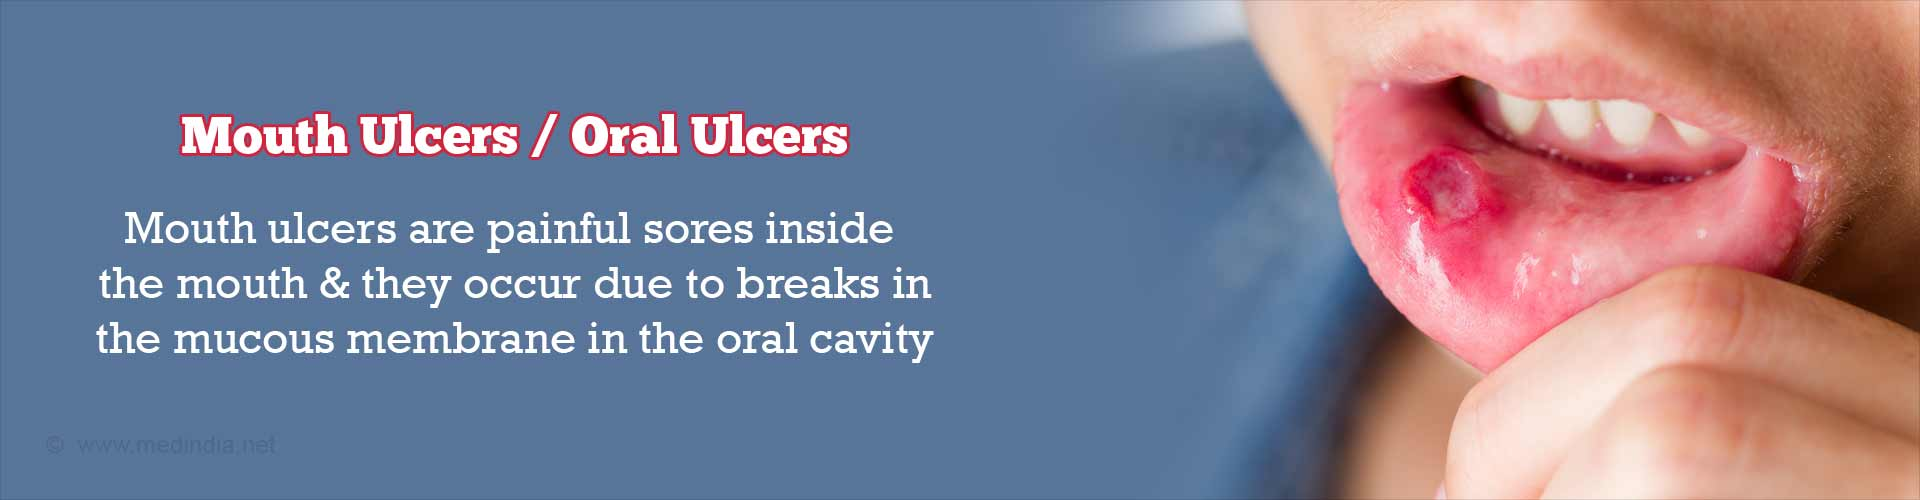 Mouth Ulcers / Oral Ulcers